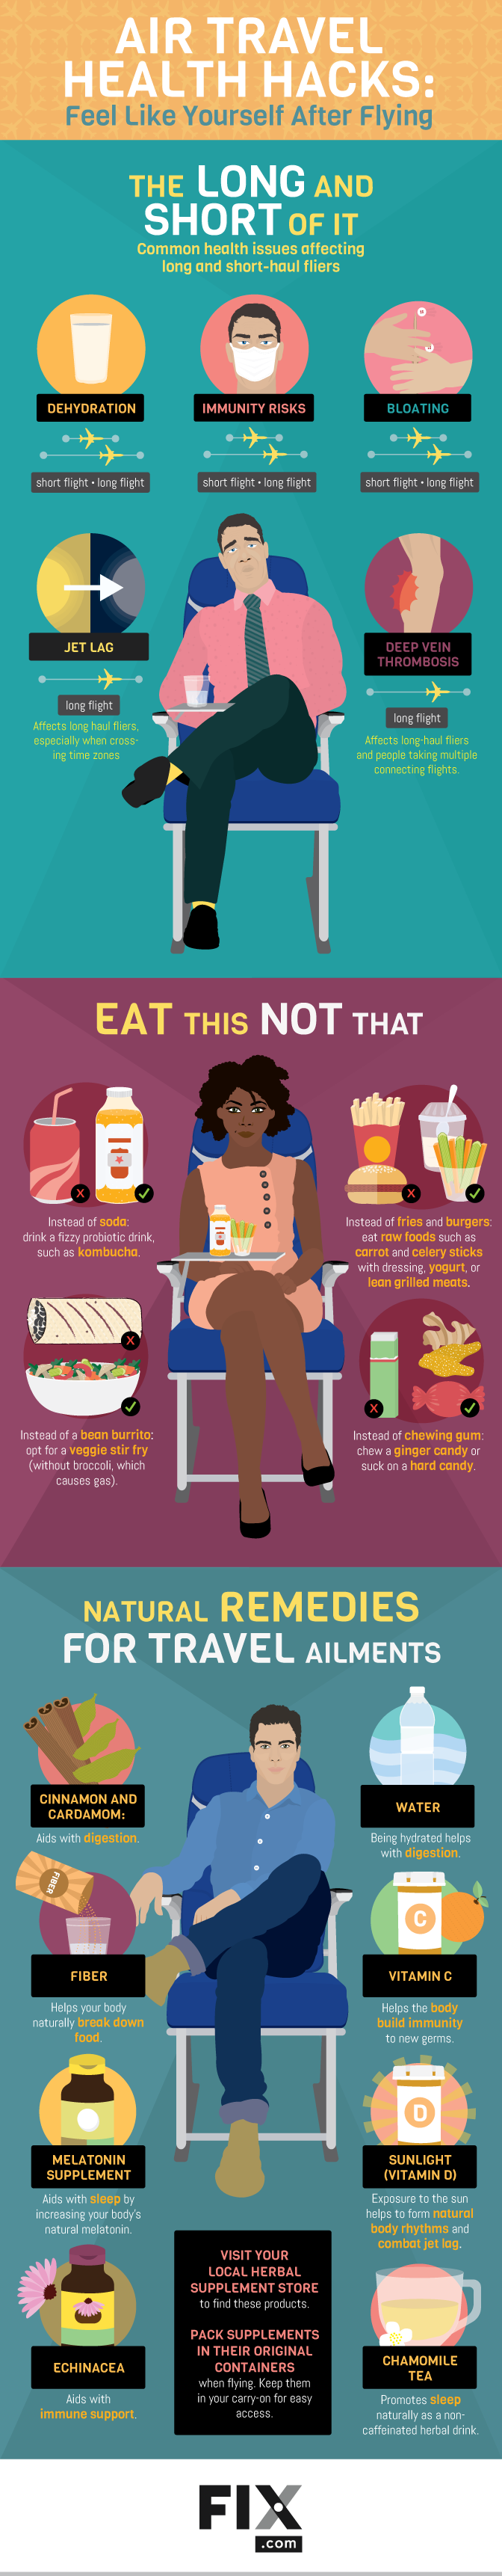 Air Travel Health Hacks #Infographic